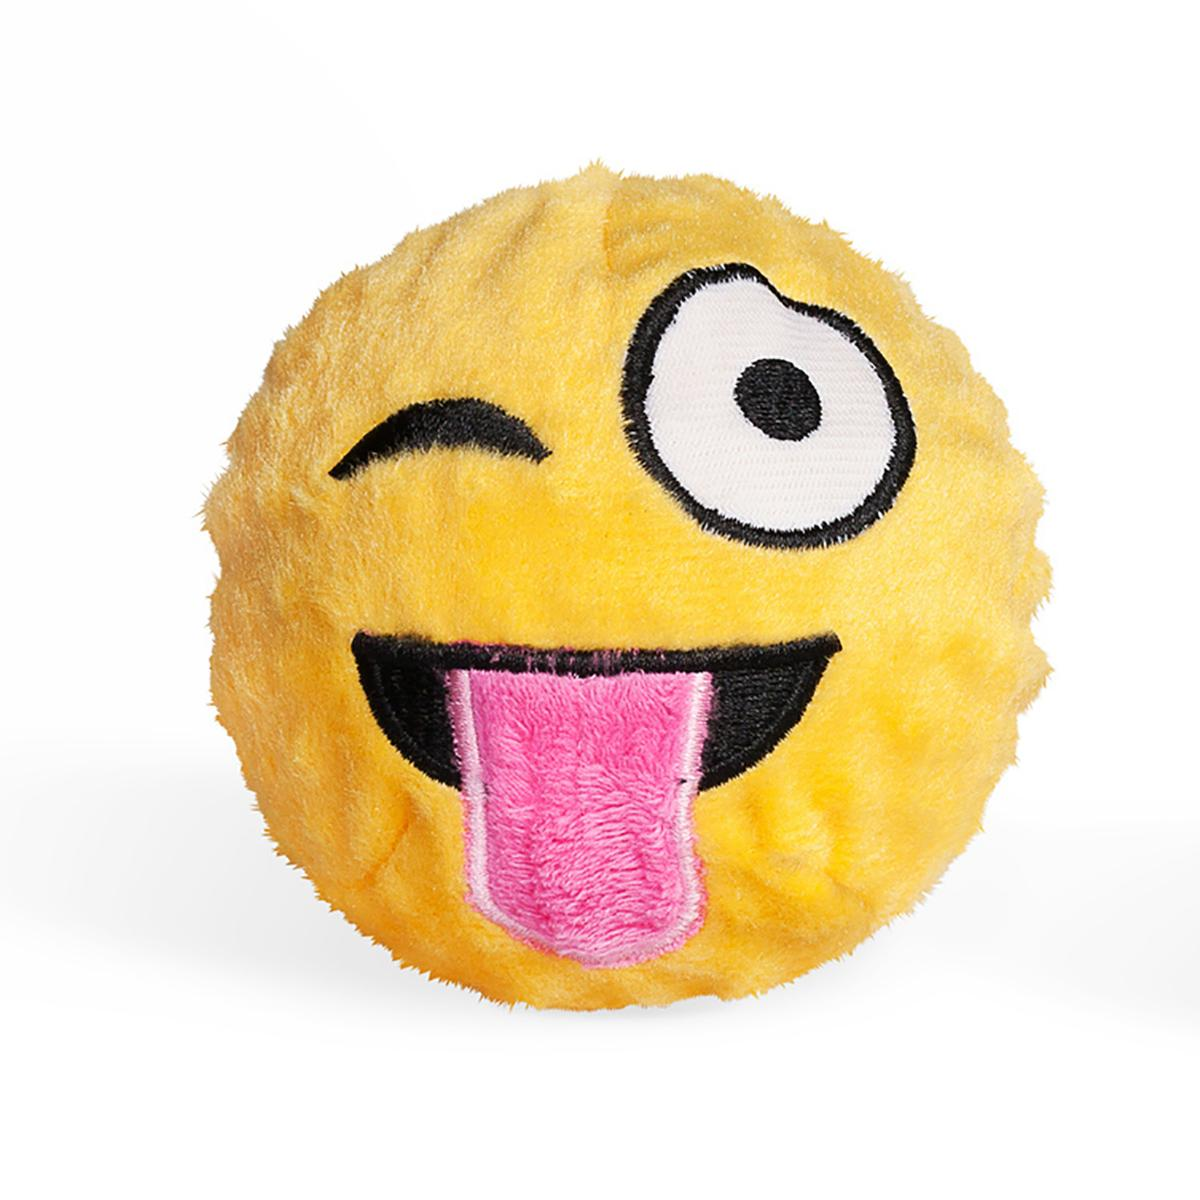 Emoji Faballs Dog Toy - Tongue Out Winking